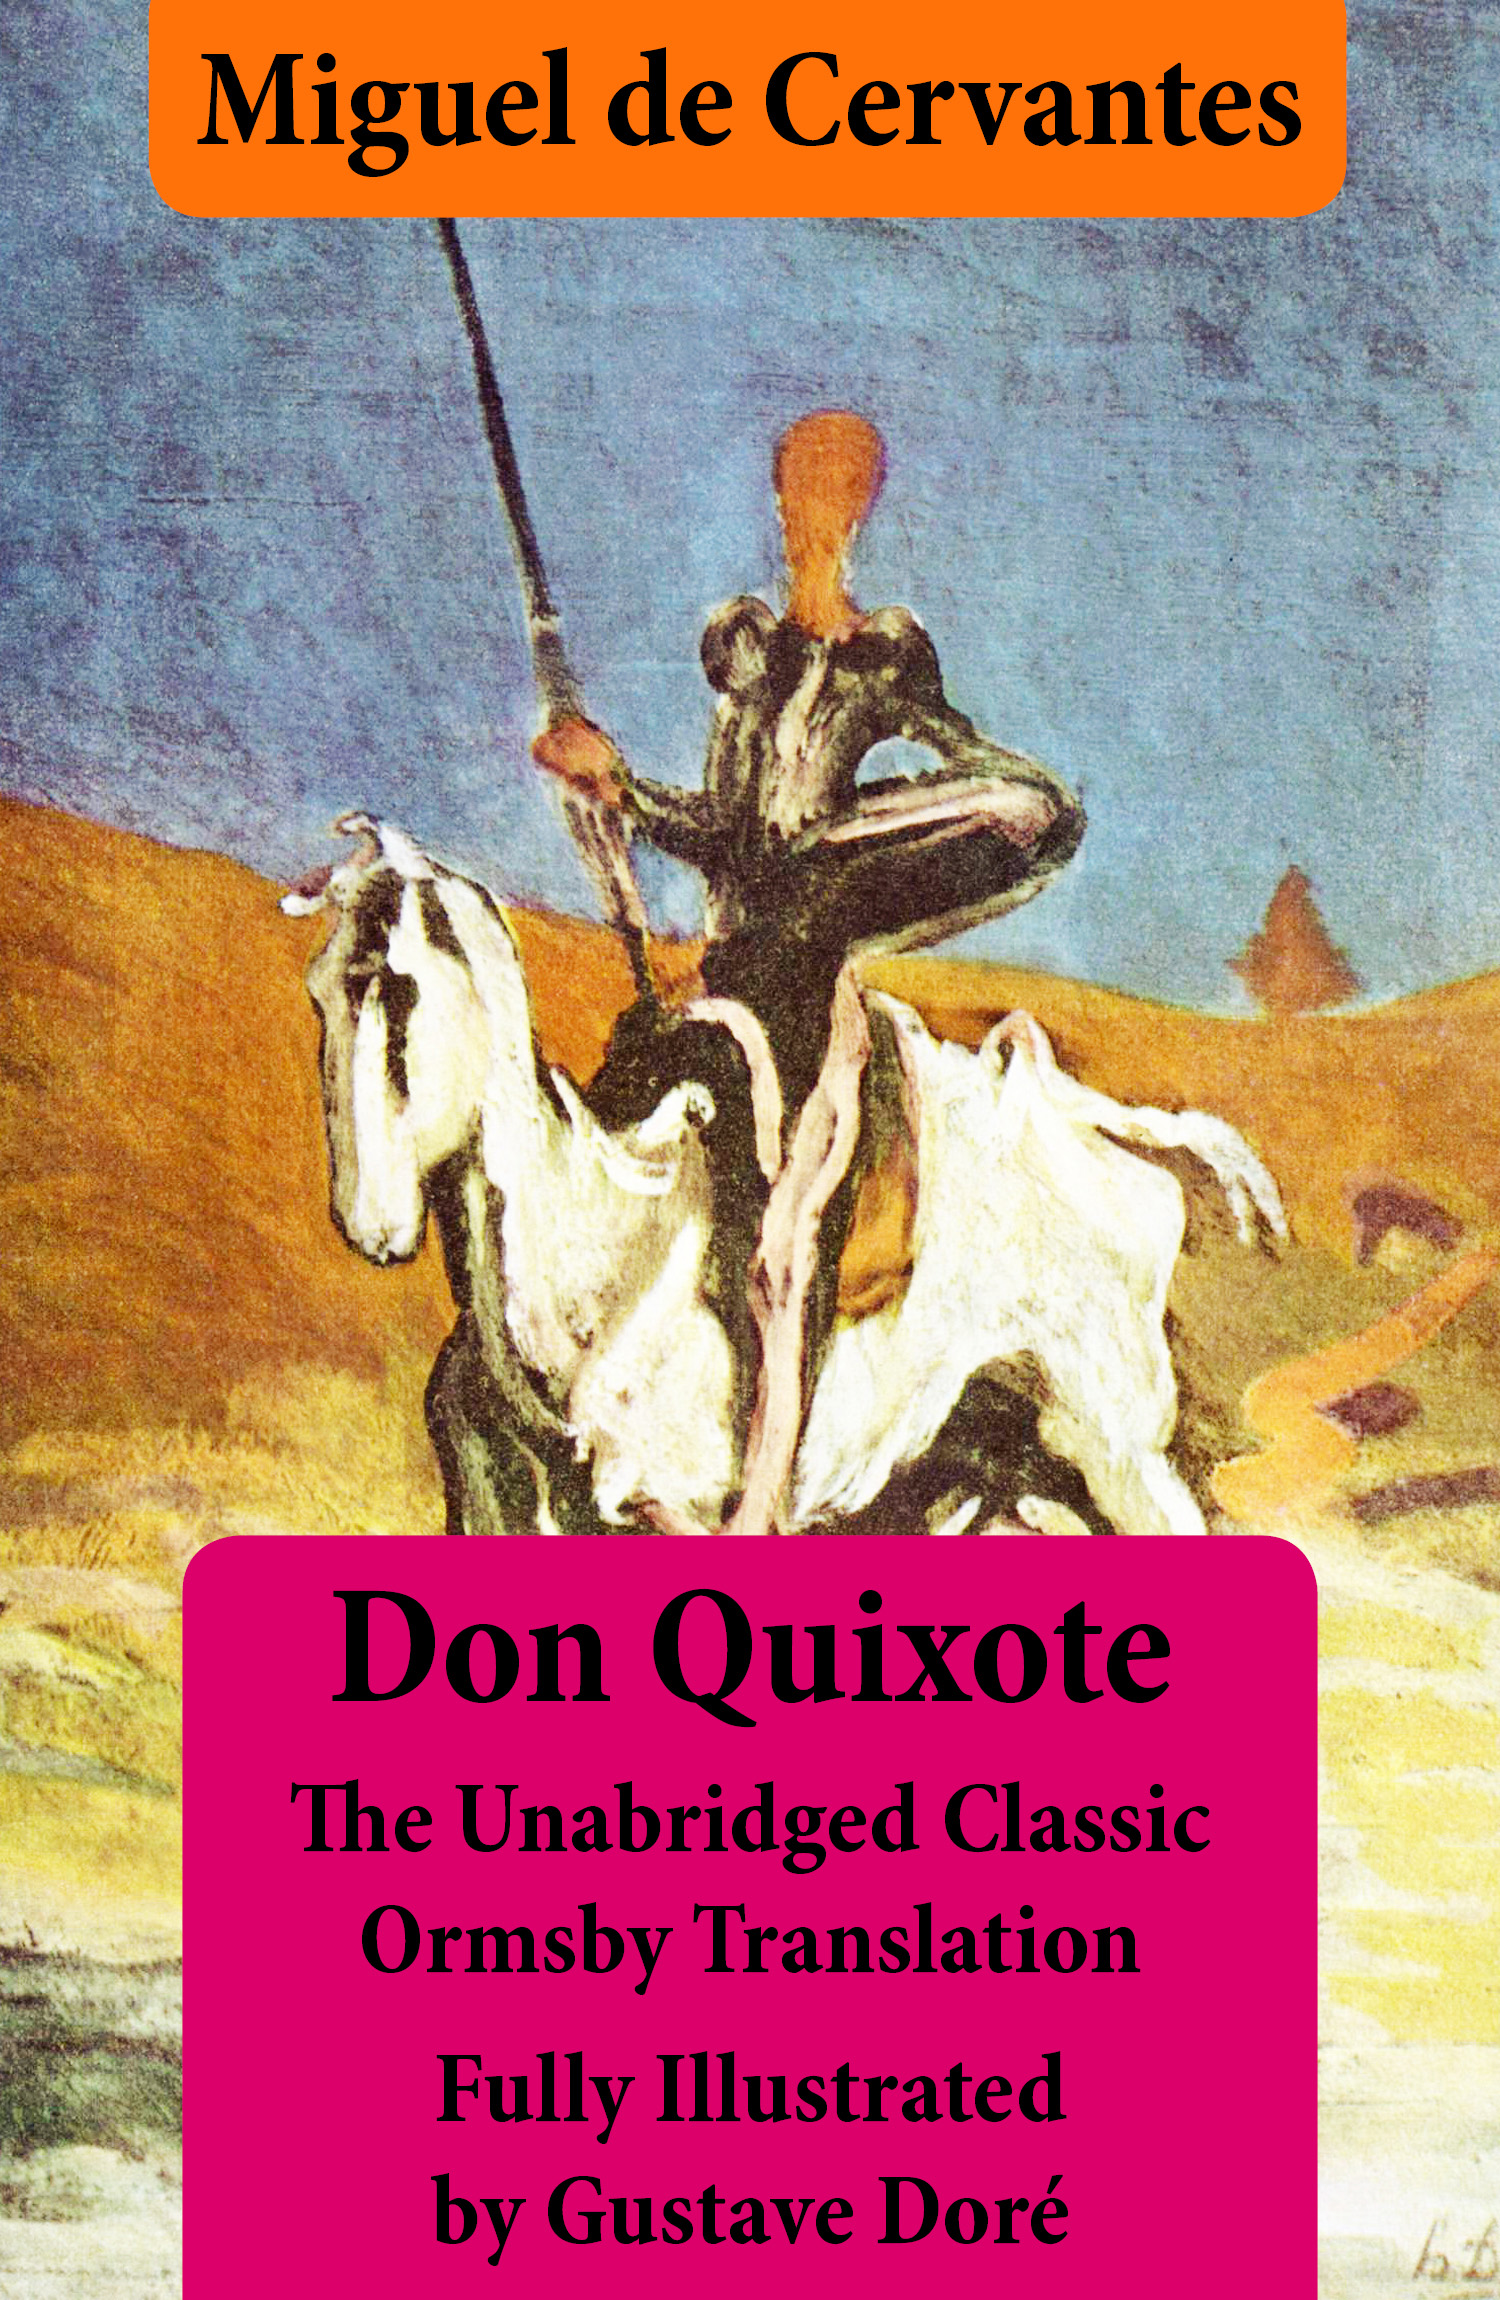 Don Quixote (illustrated & annotated) - The Unabridged Classic Ormsby Translation fully illustrated by Gustave Doré